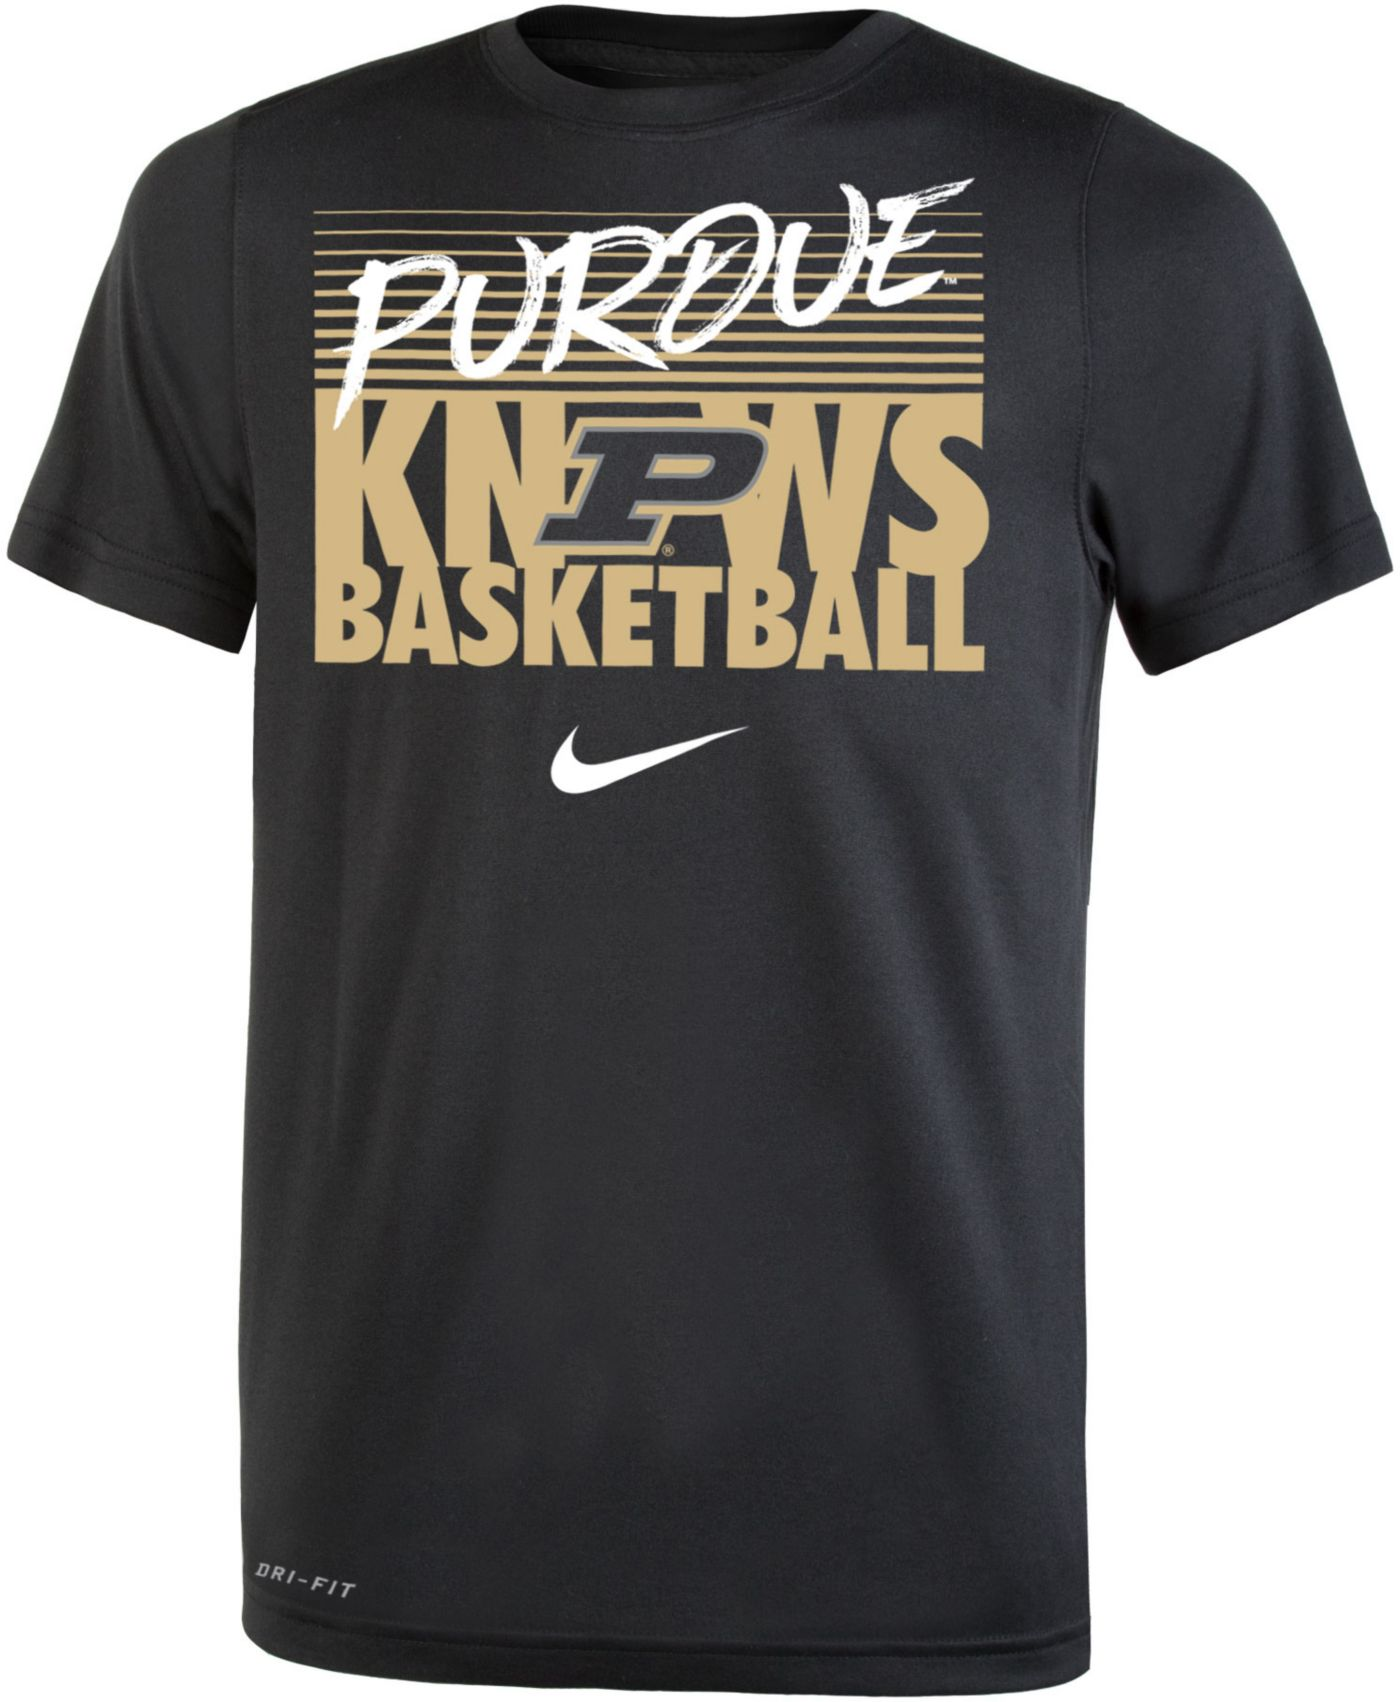 Nike Youth Purdue Boilermakers Basketball Phrase Black T-Shirt